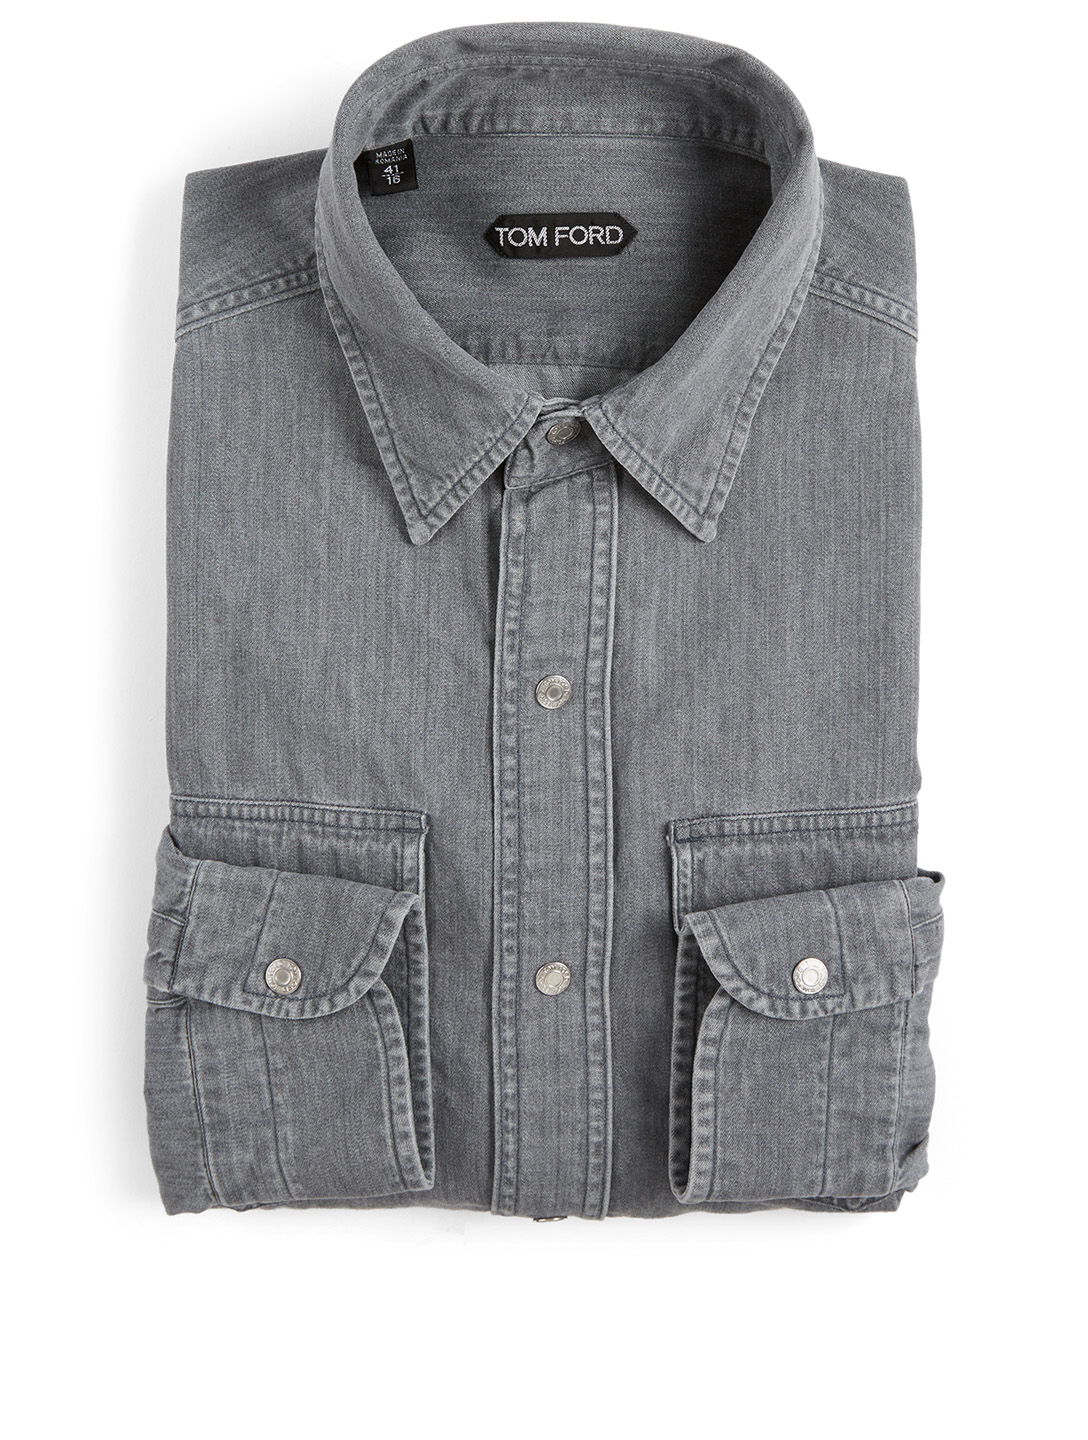 TOM FORD Cotton Denim Shirt Men's Grey